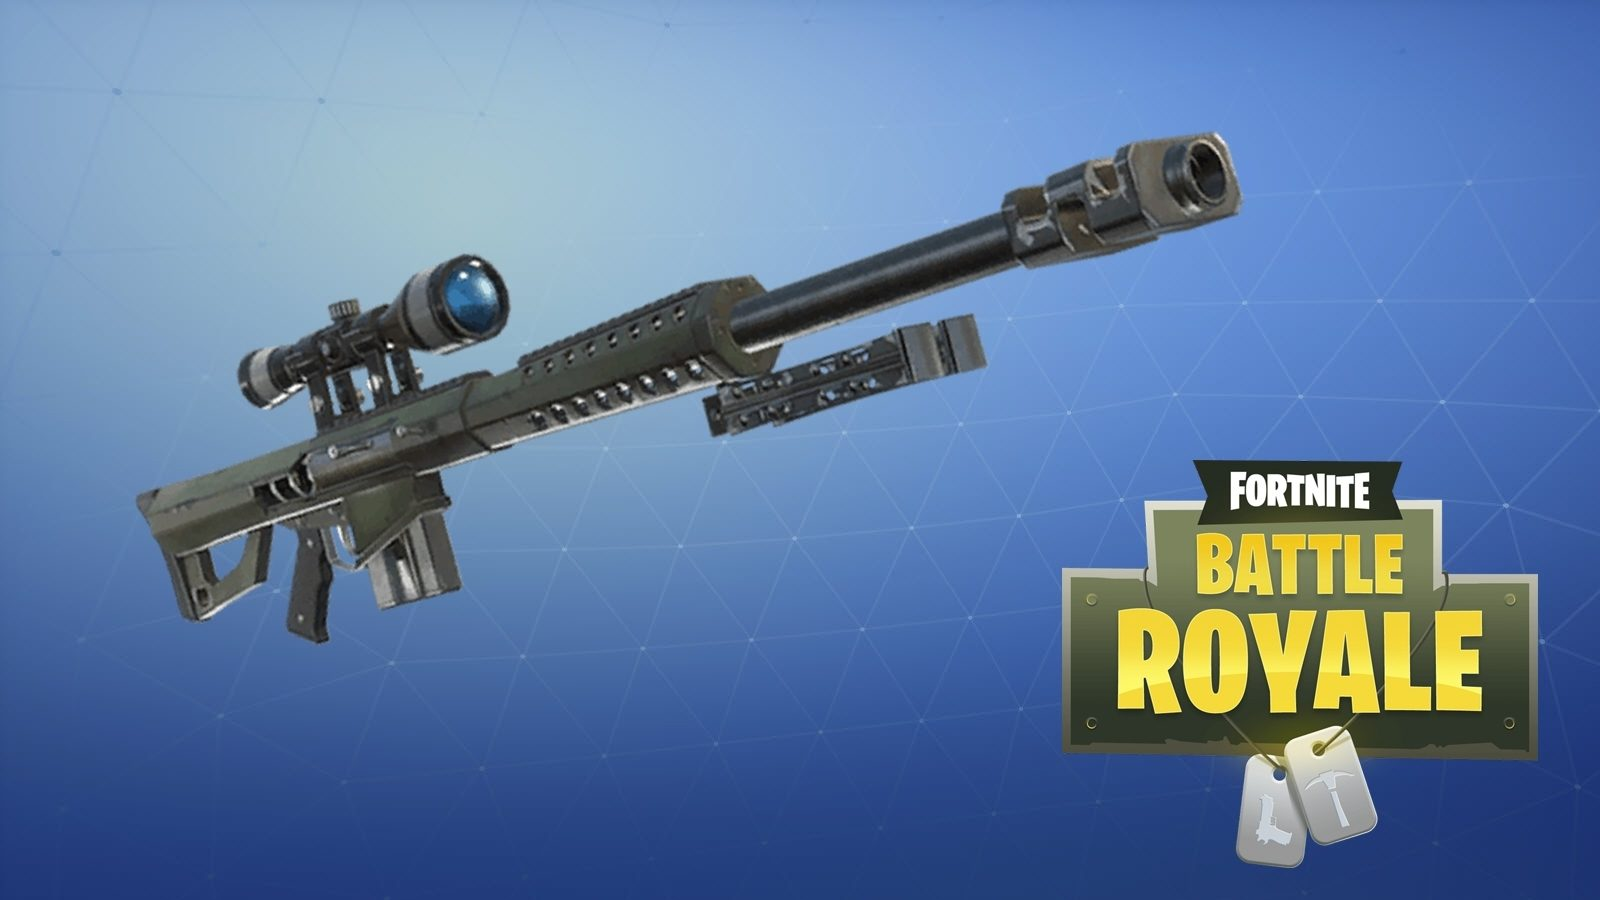 Fortnite Battle Royale Is Going To Get Upgrade With New Rifle